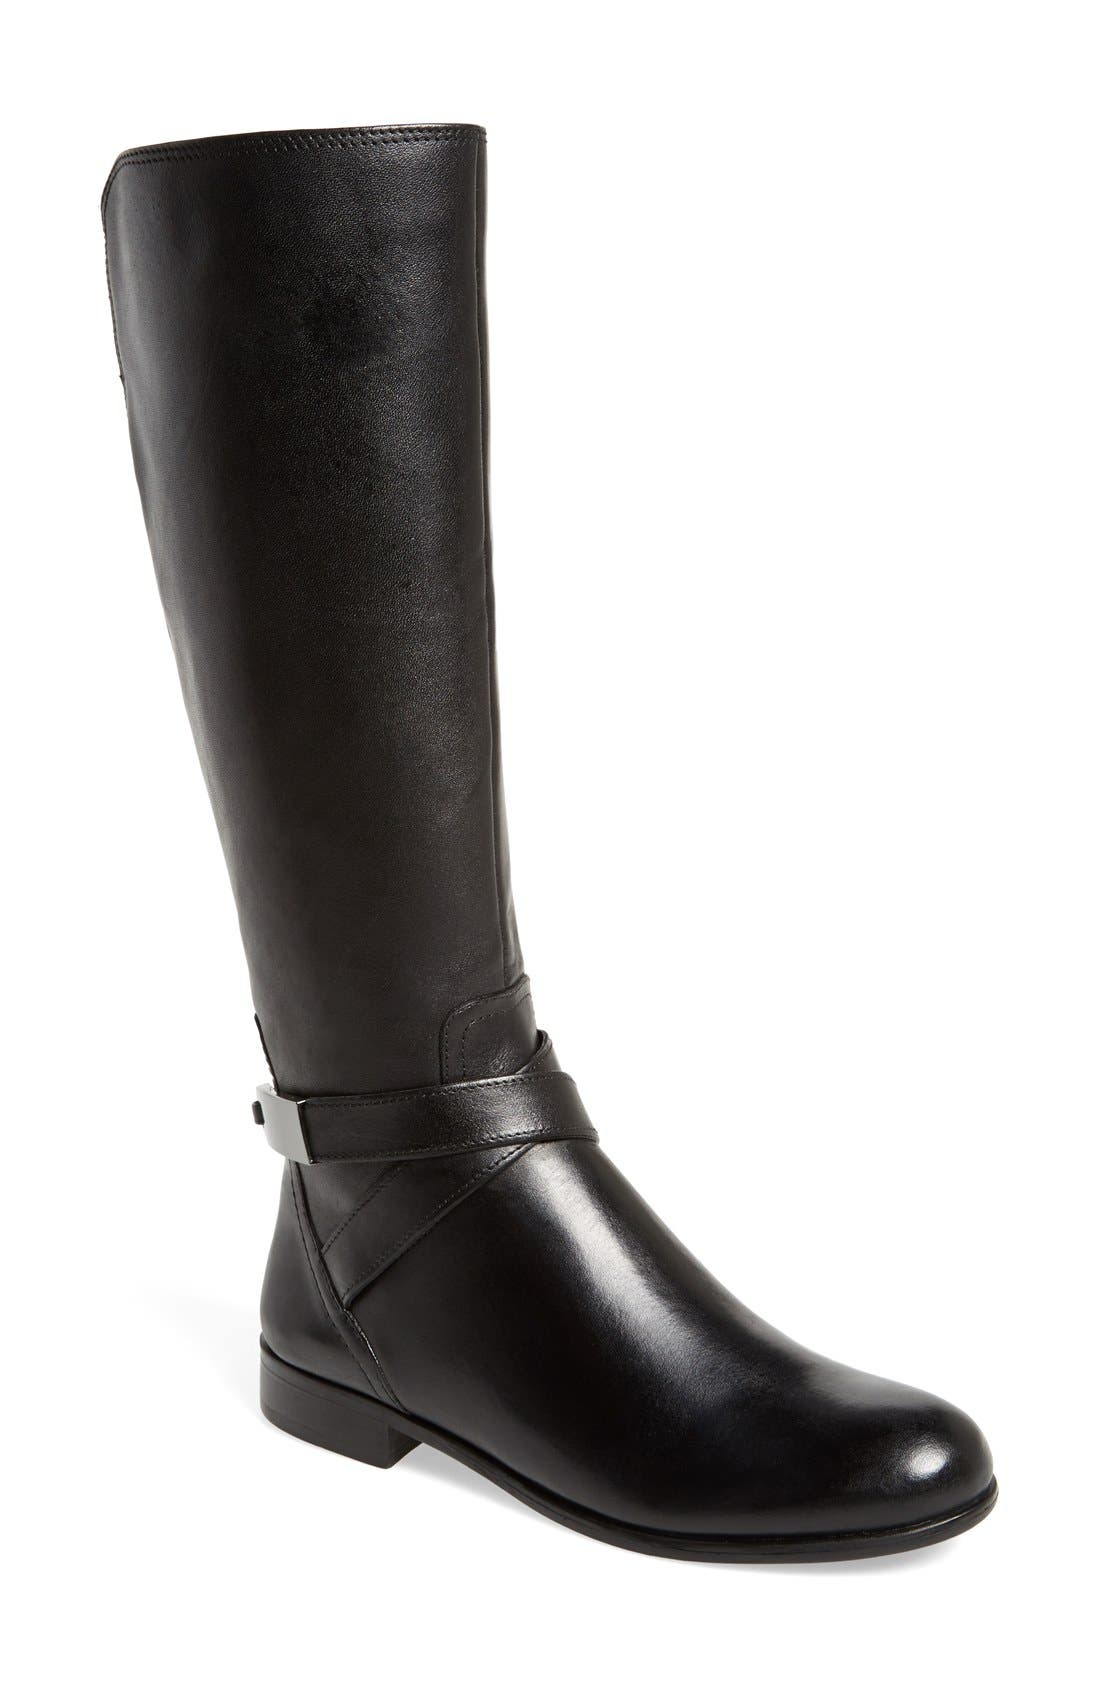 Main Image - Franco Sarto 'Majesta' Riding Boot (Women)